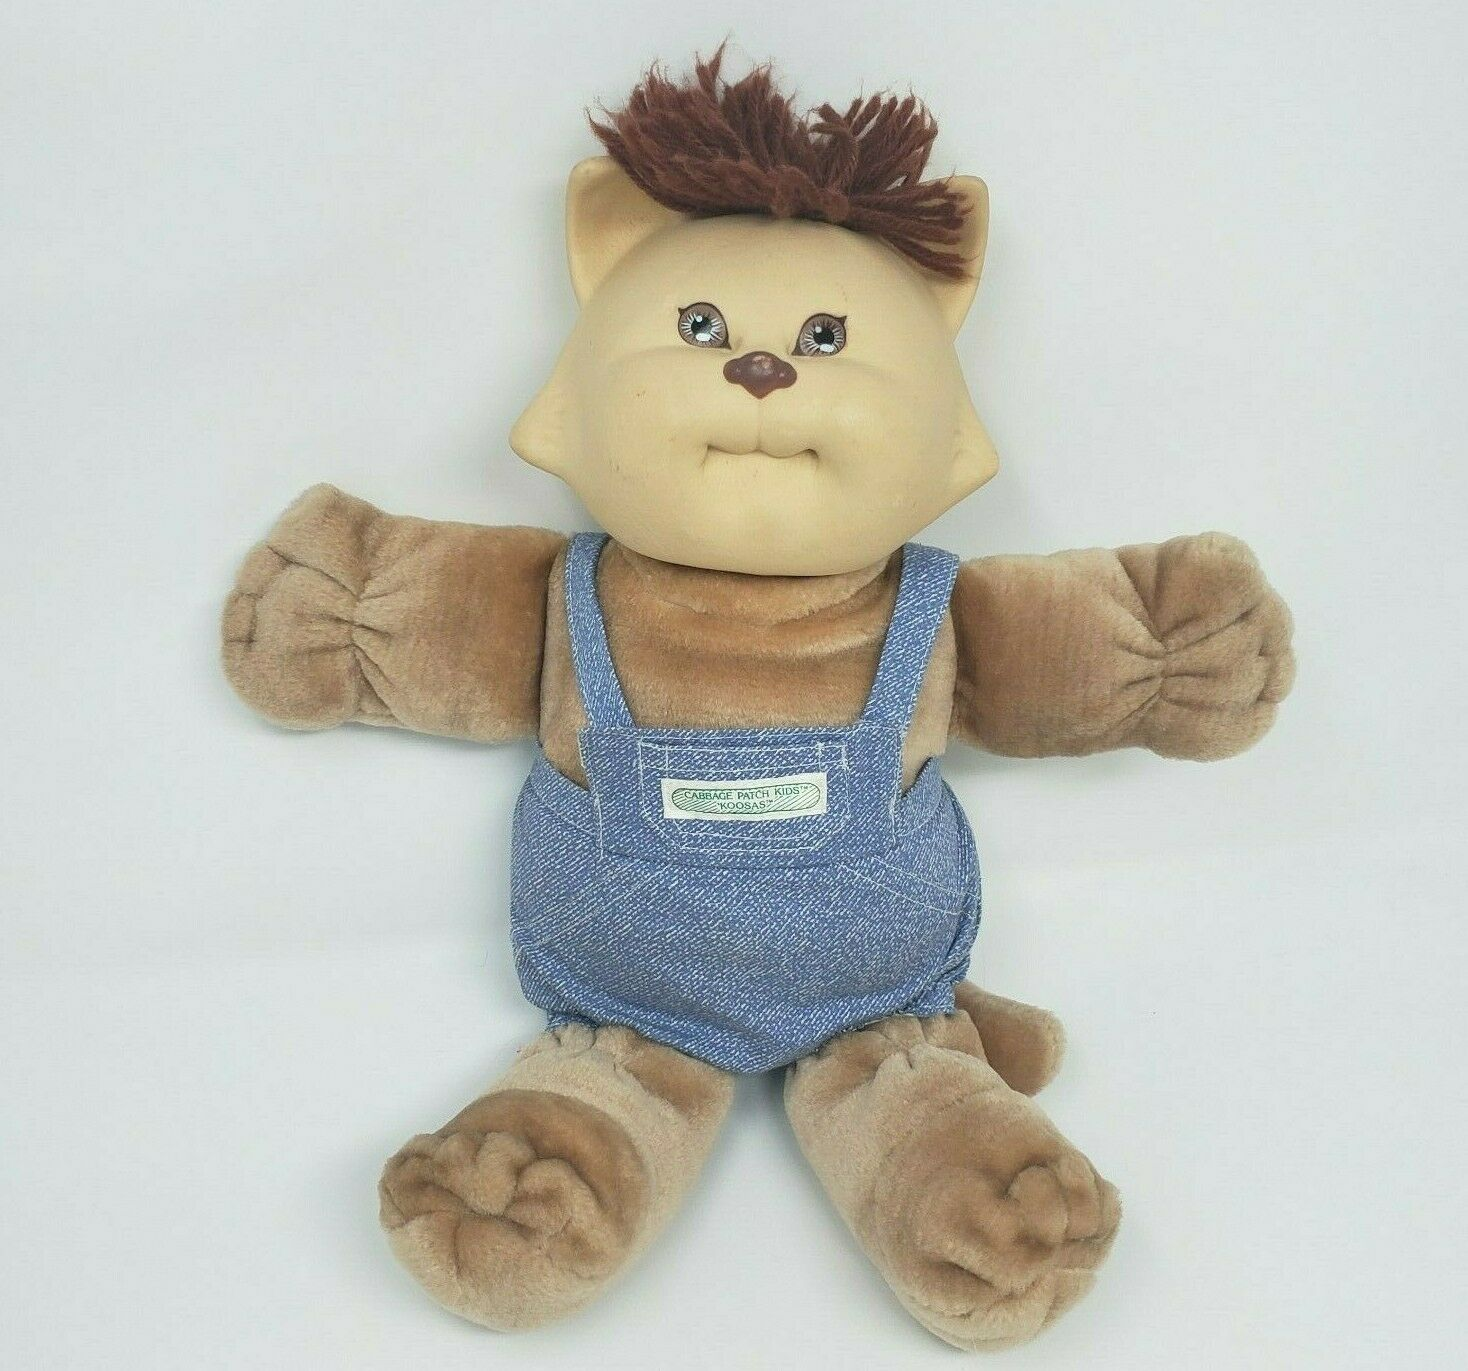 Primary image for VINTAGE 1983 CABBAGE PATCH KIDS KOOSAS DOLL STUFFED ANIMAL PLUSH TOY W/ PANTS  F